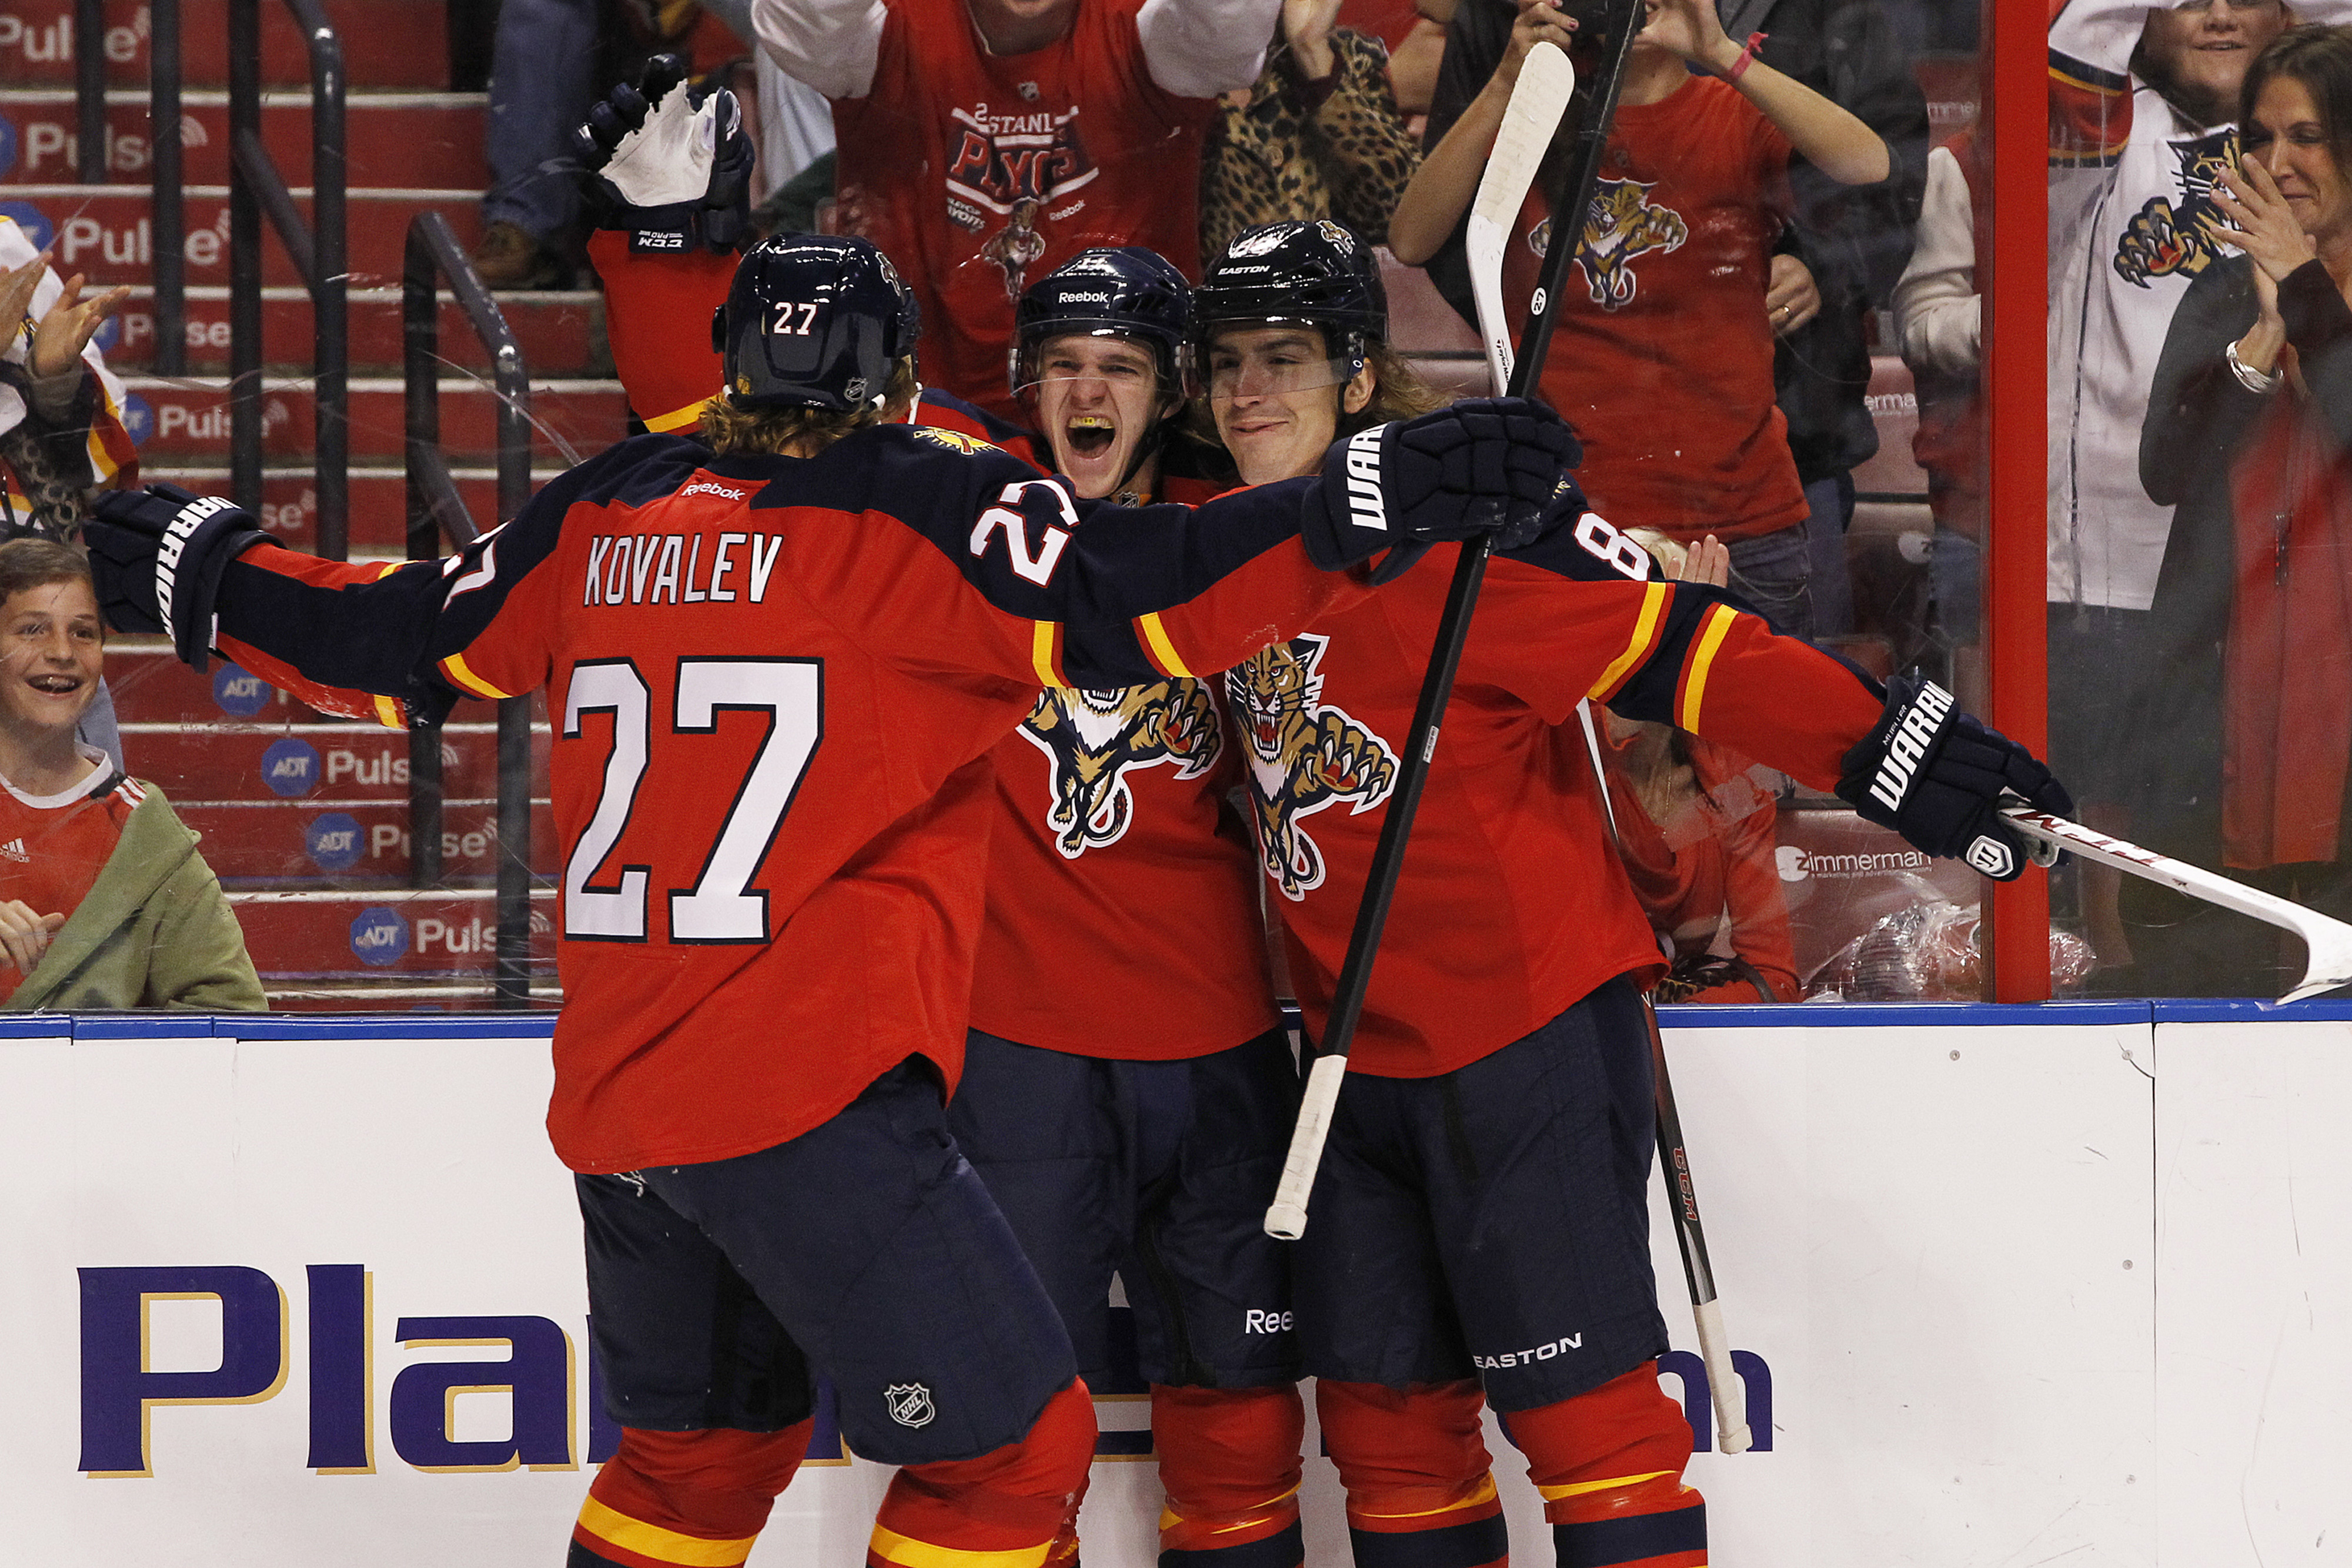 Florida Panthers rookie Jonathan Huberdeau, center, introduced himself to the Southeast Division with a goal and 2 assists in his professional debut at age 19 last night.